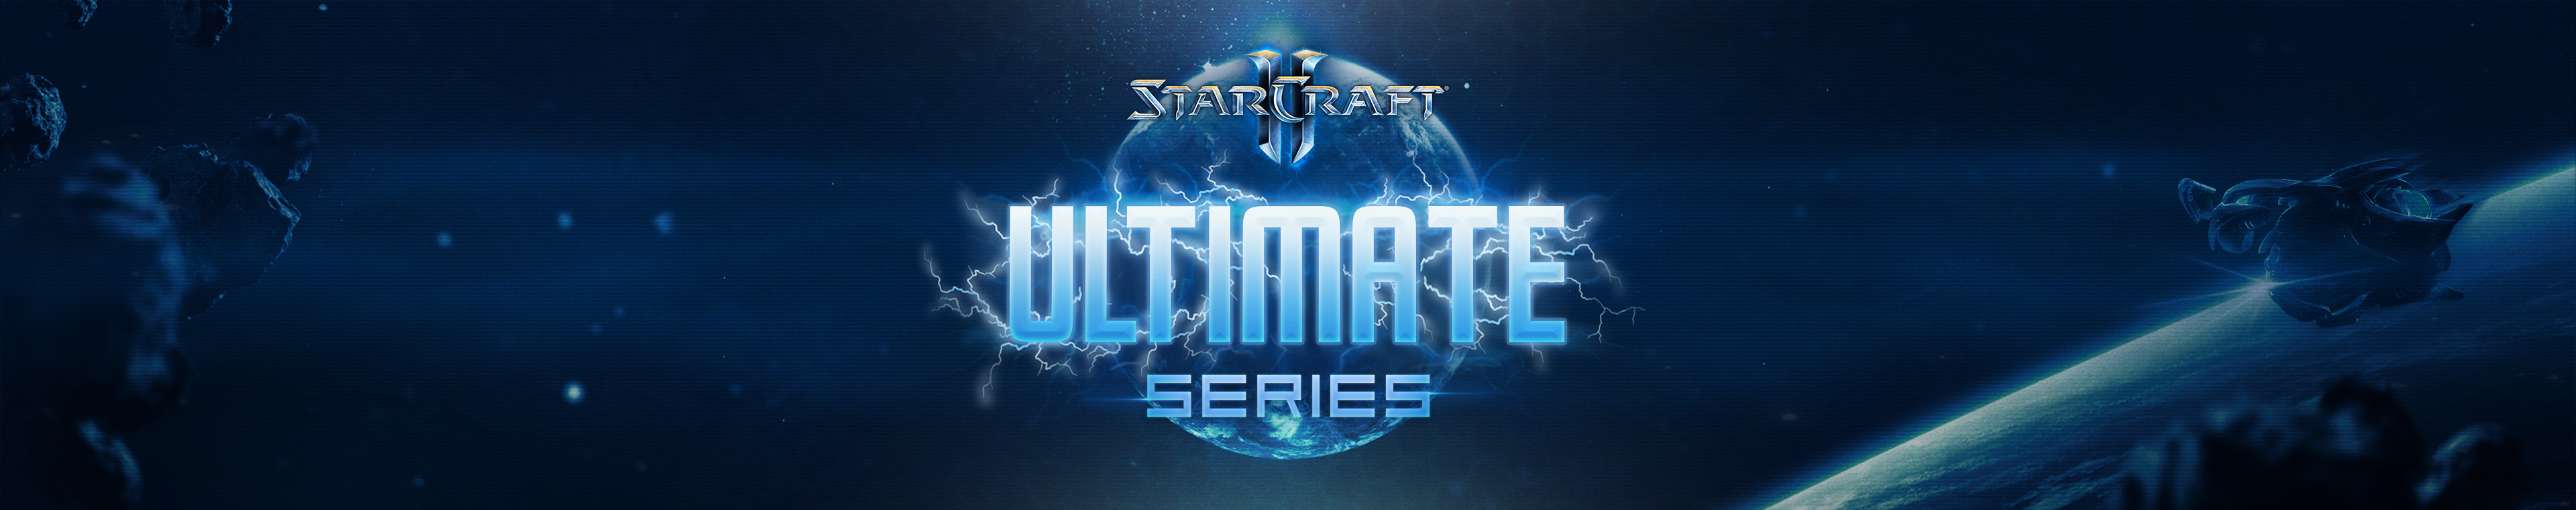 Ultimate Series 2018 Season 2 - EU